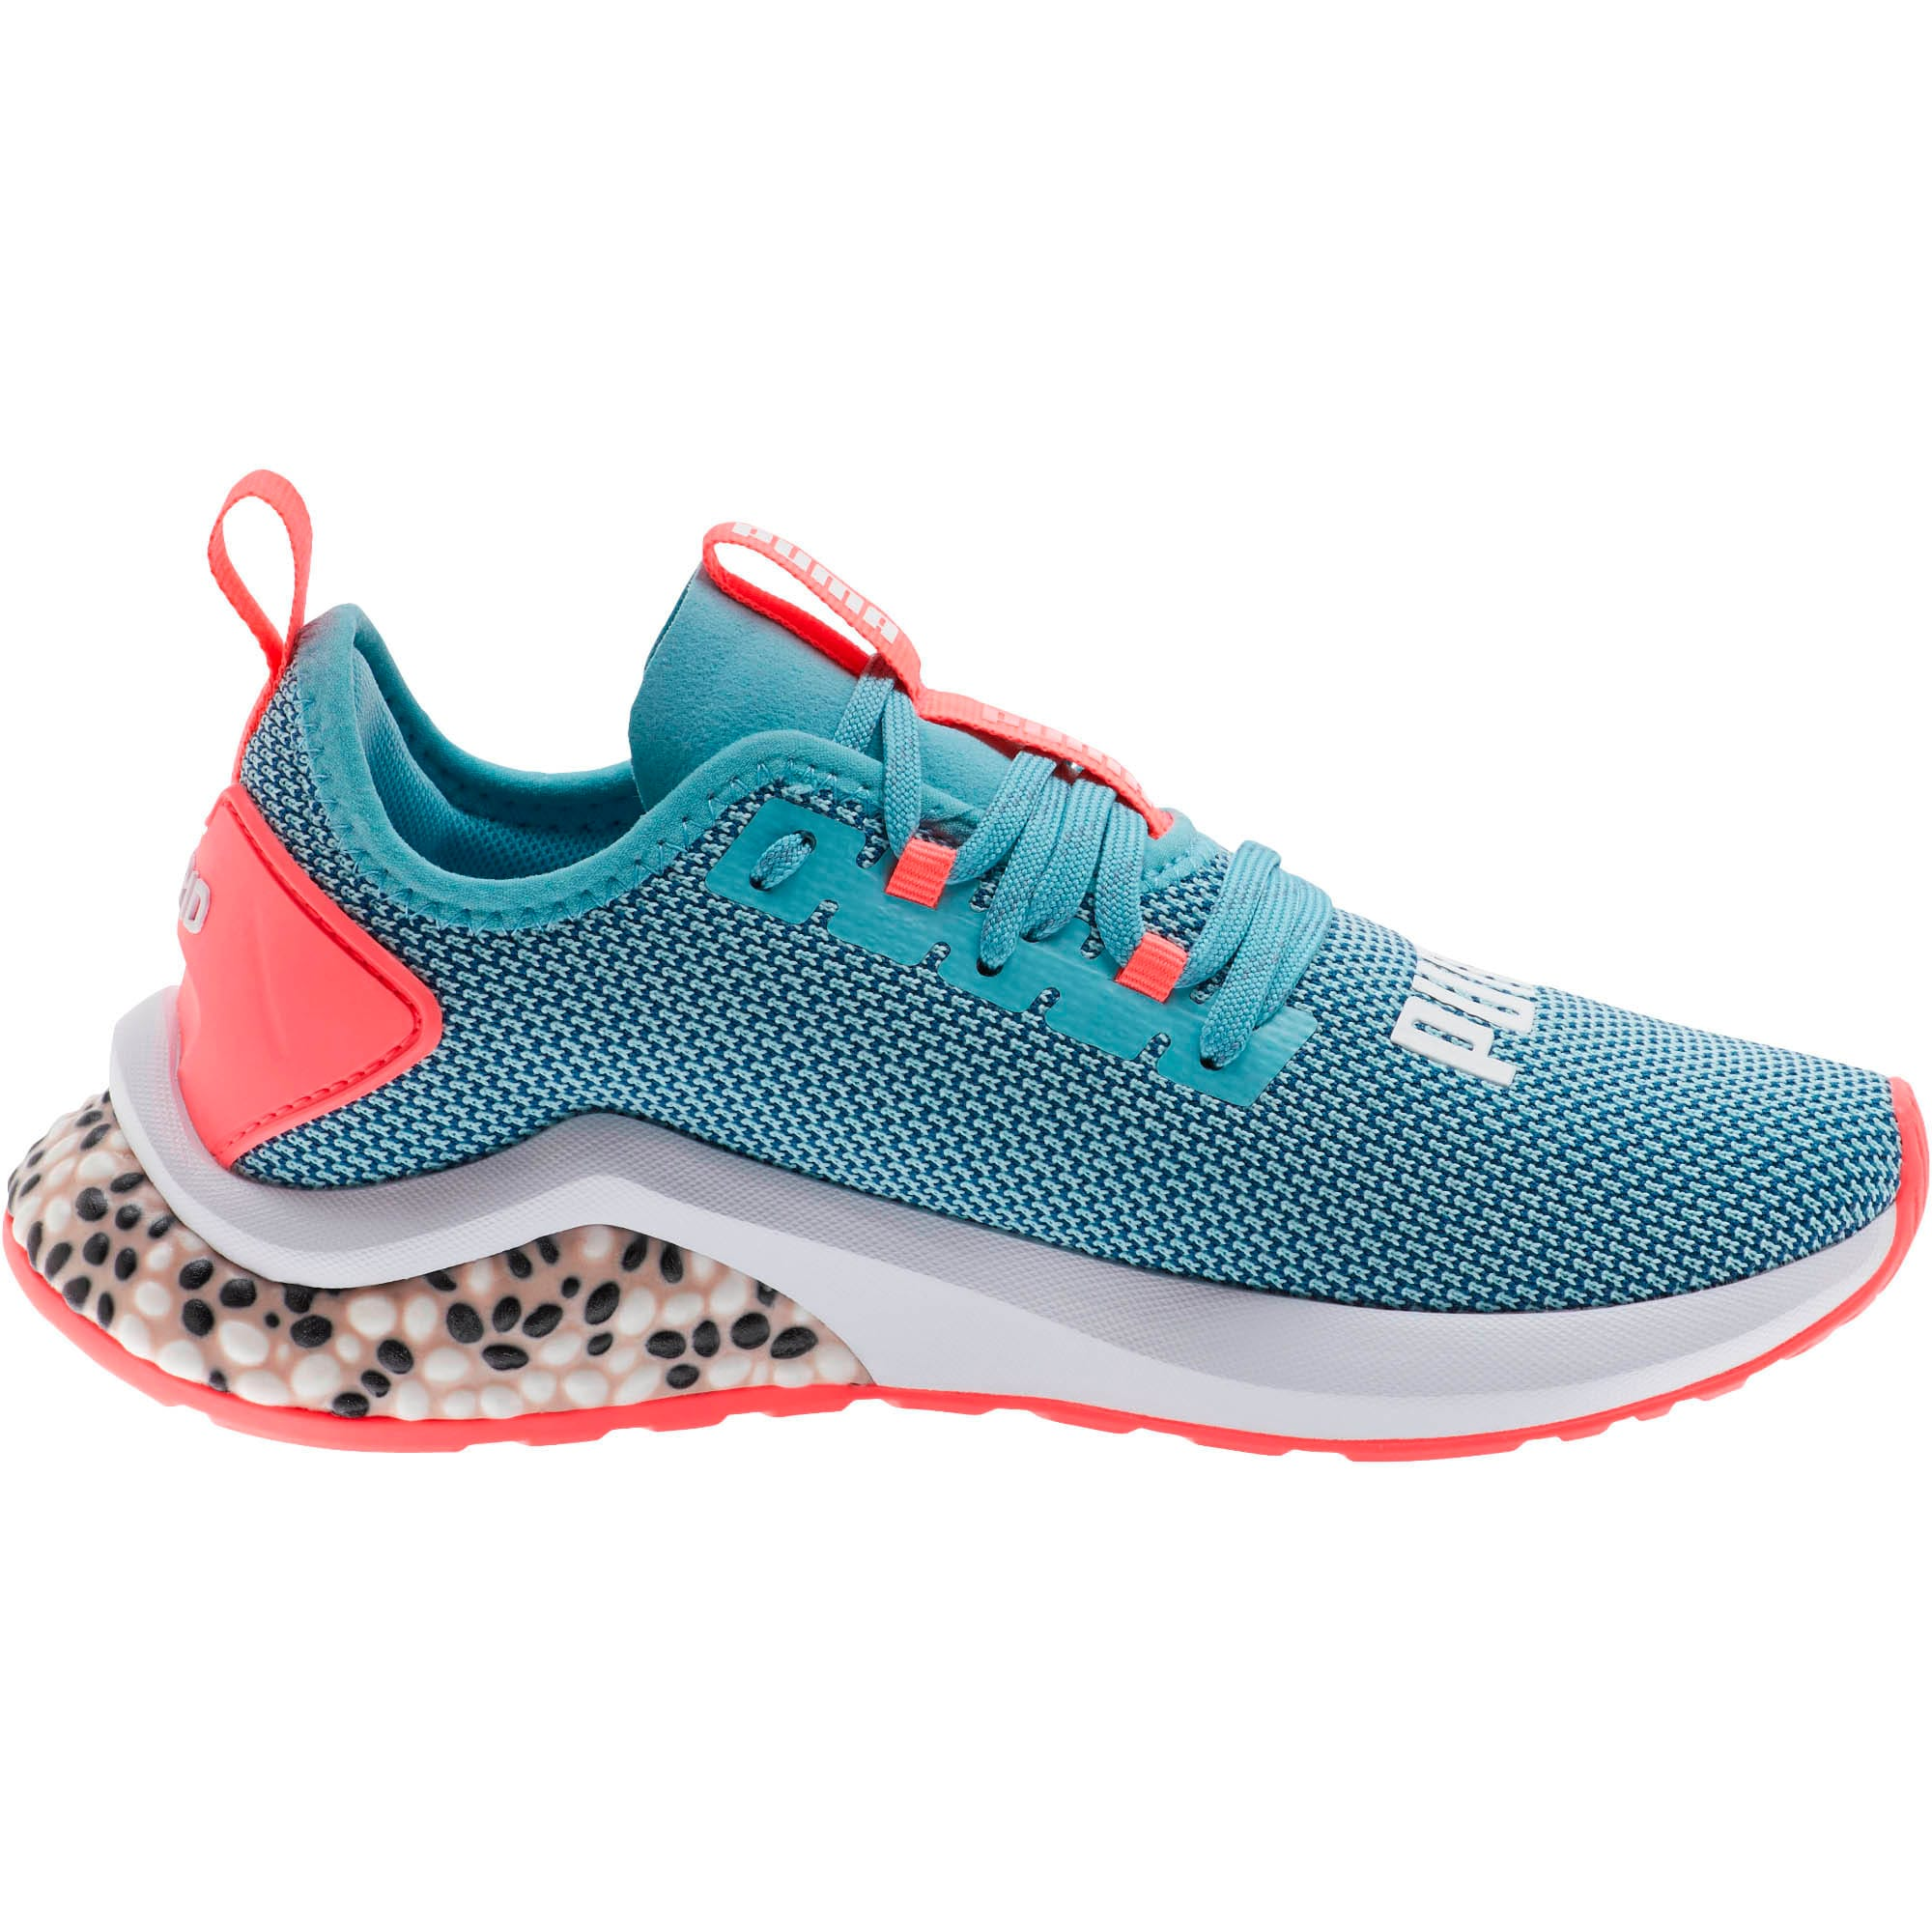 Thumbnail 4 of HYBRID NX Running Shoes JR, Milky Blue-Calypso Coral-Wht, medium